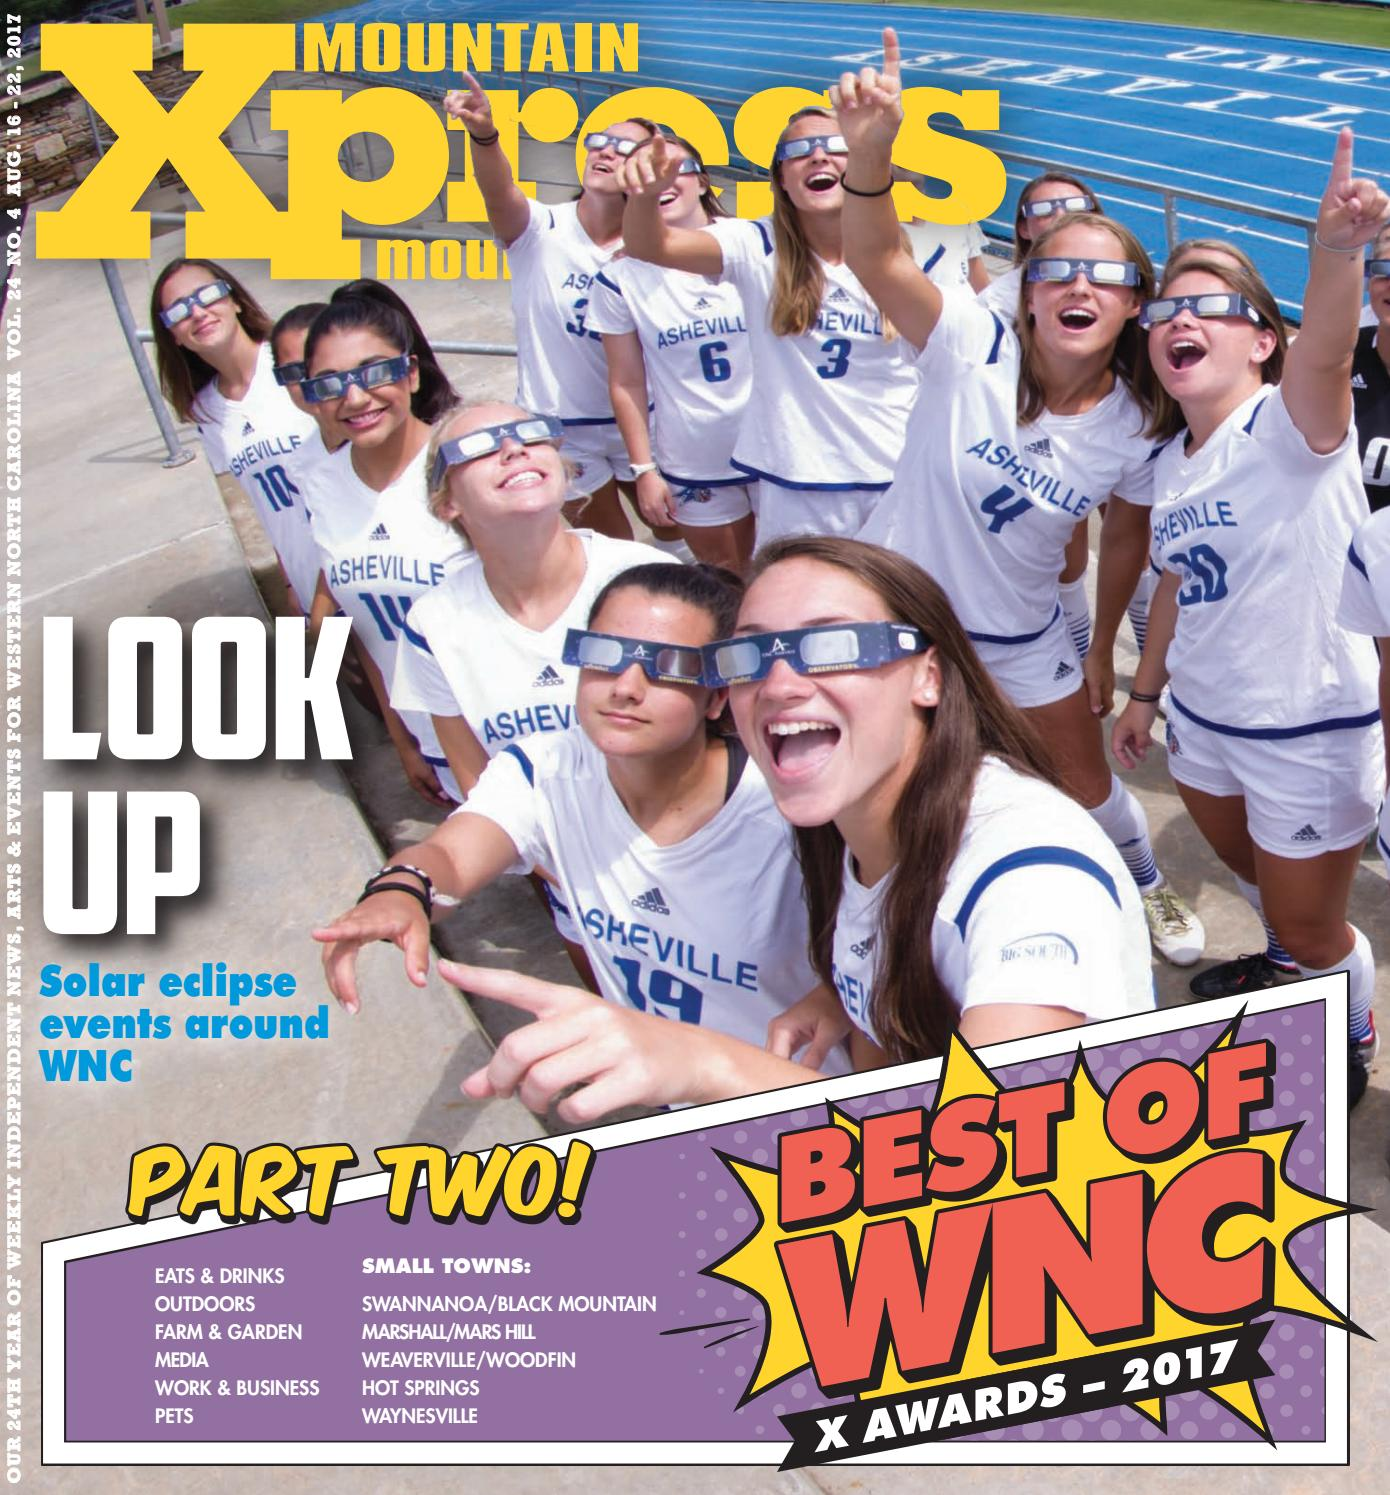 Mountain Xpress 08 16 17 By Mountain Xpress Issuu